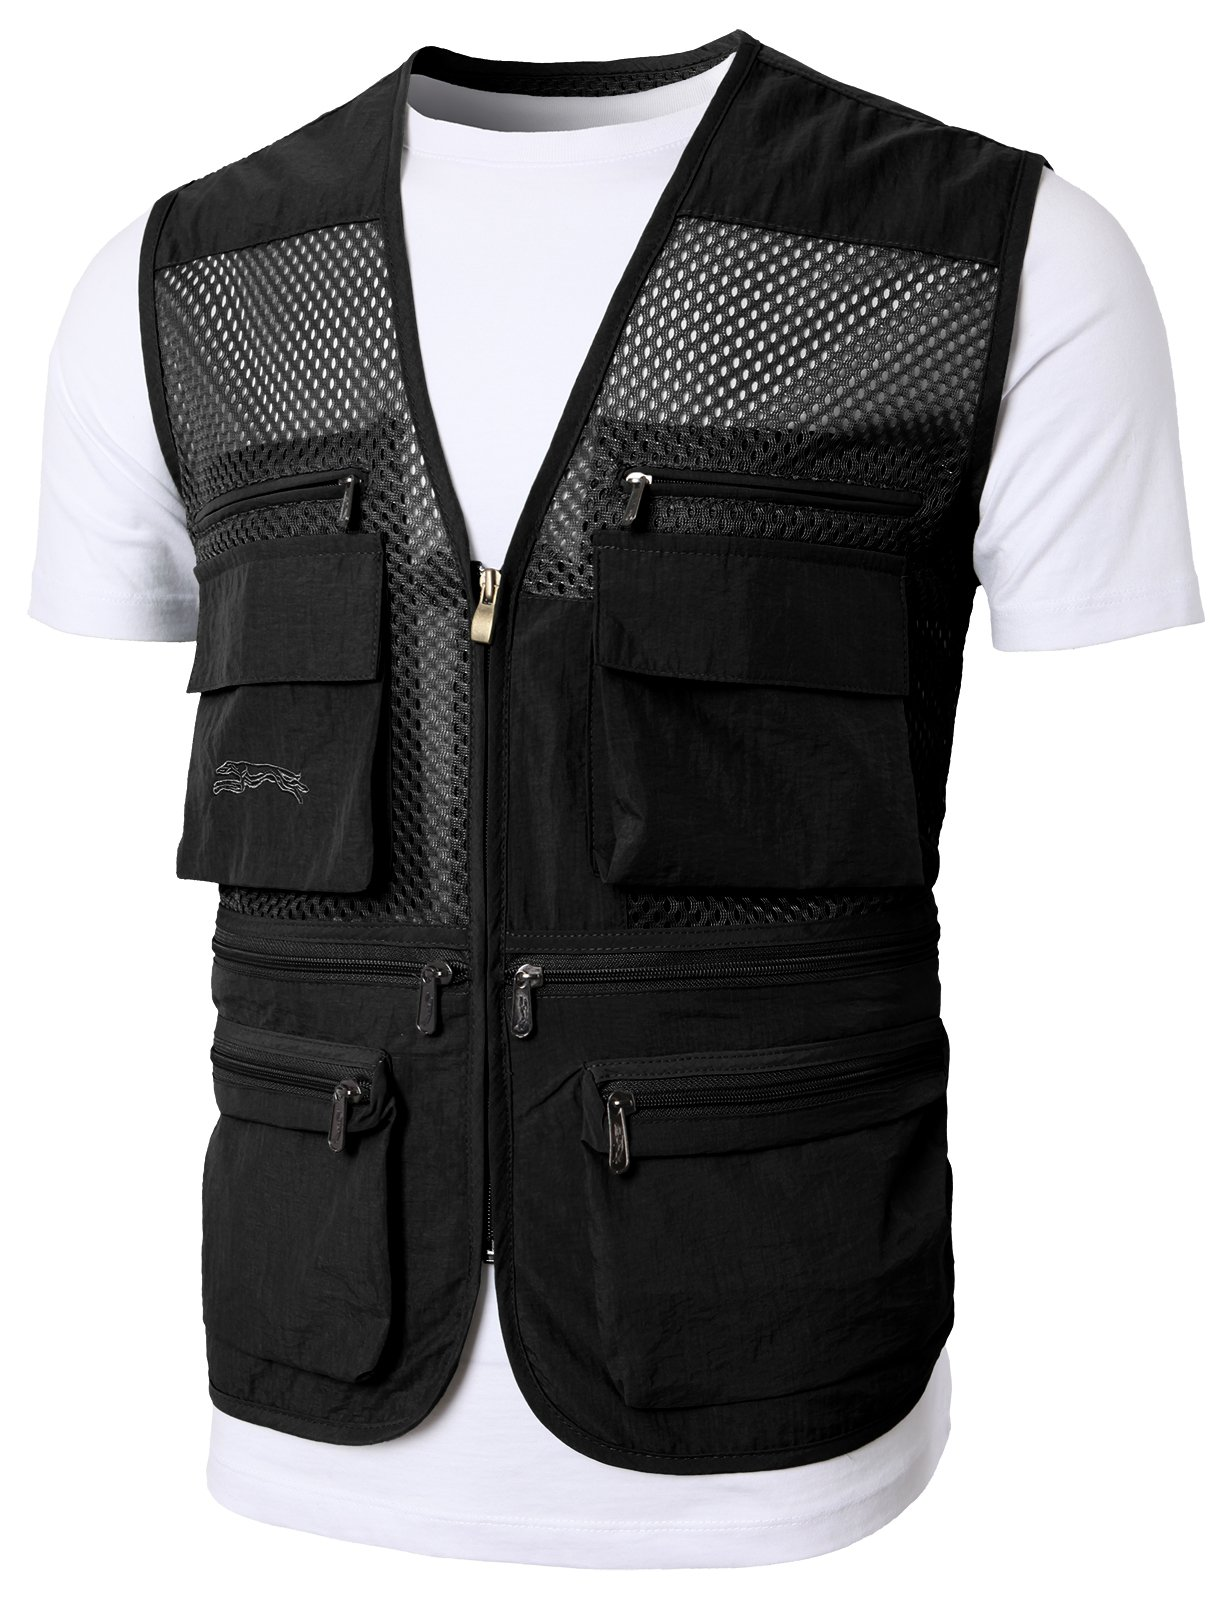 H2H Mens Casual Work Utility Hunting Travels Sports Vest With Multiple Pockets Black US XL/Asia 2XL (KMOV0149)